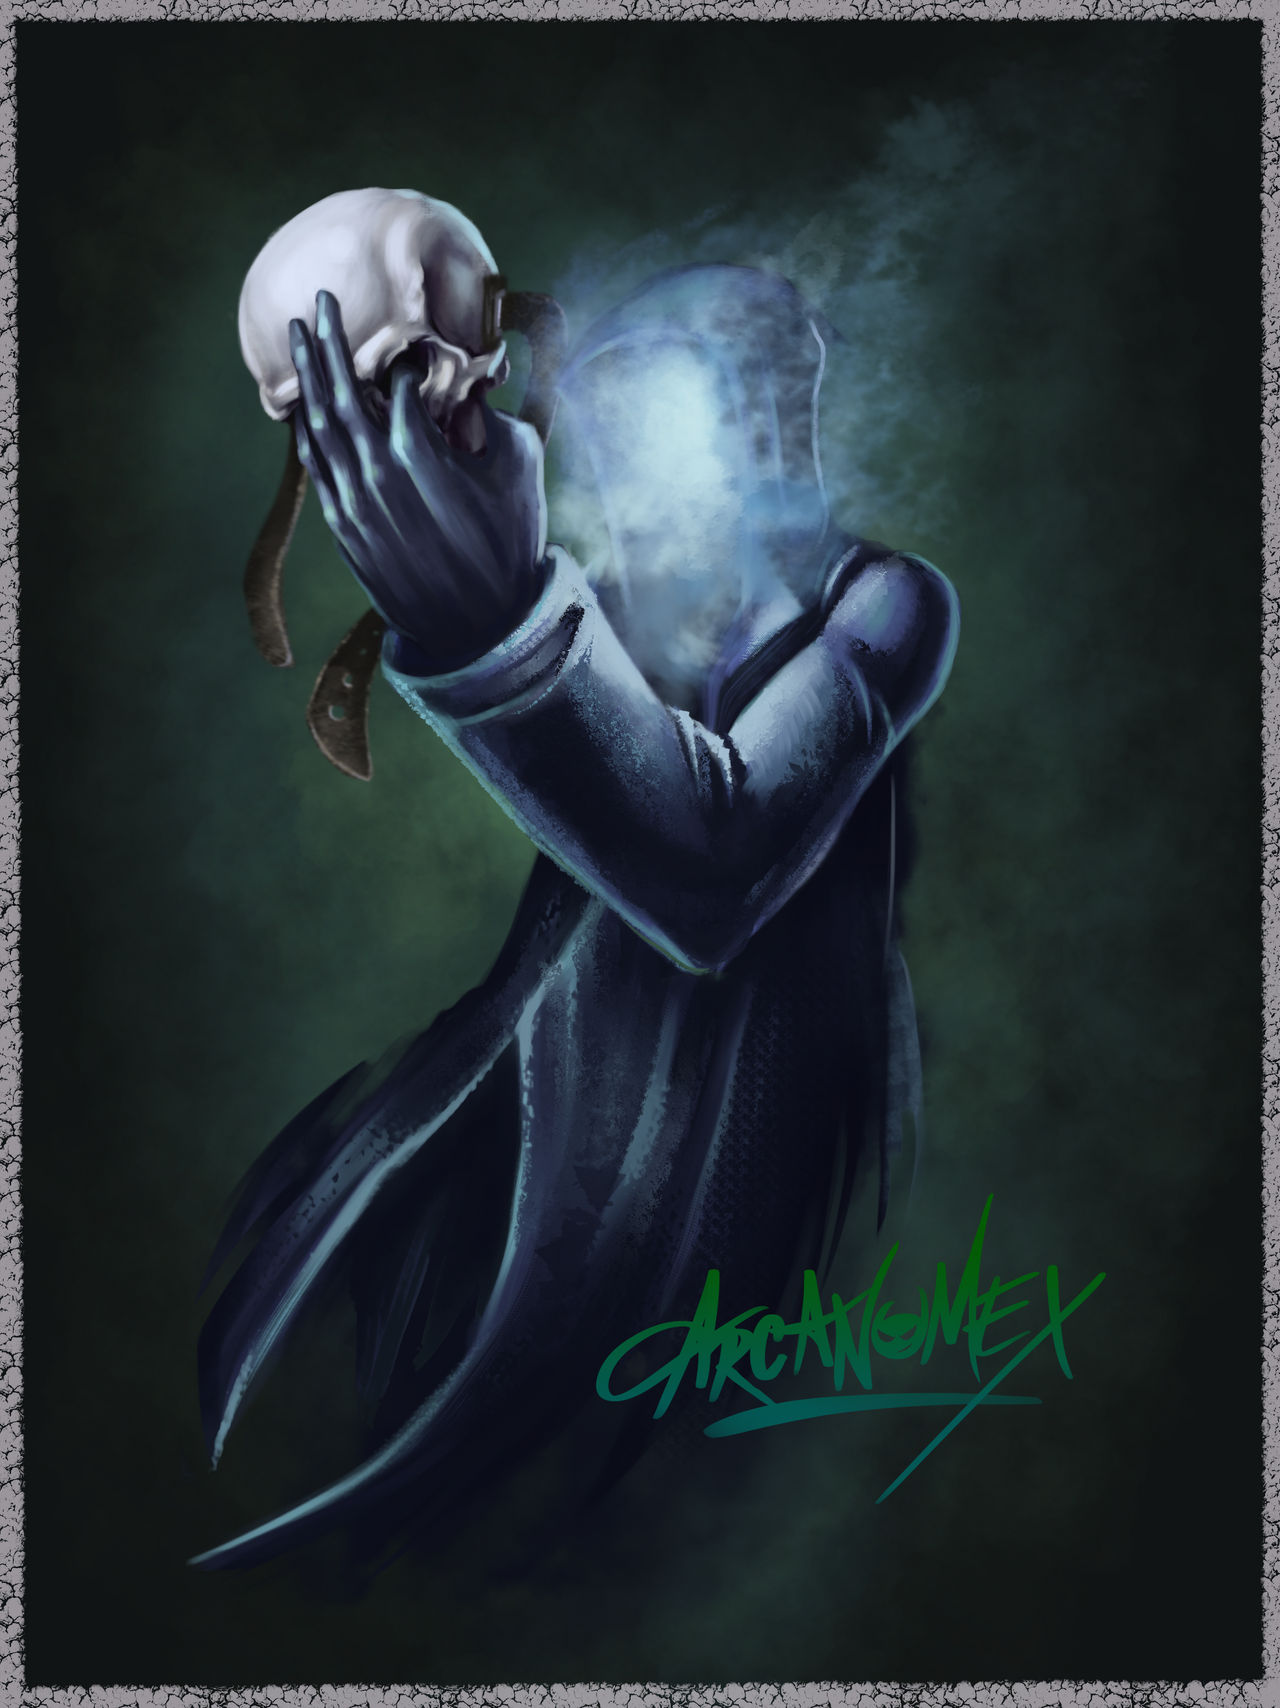 The mask of the Grim Reaper